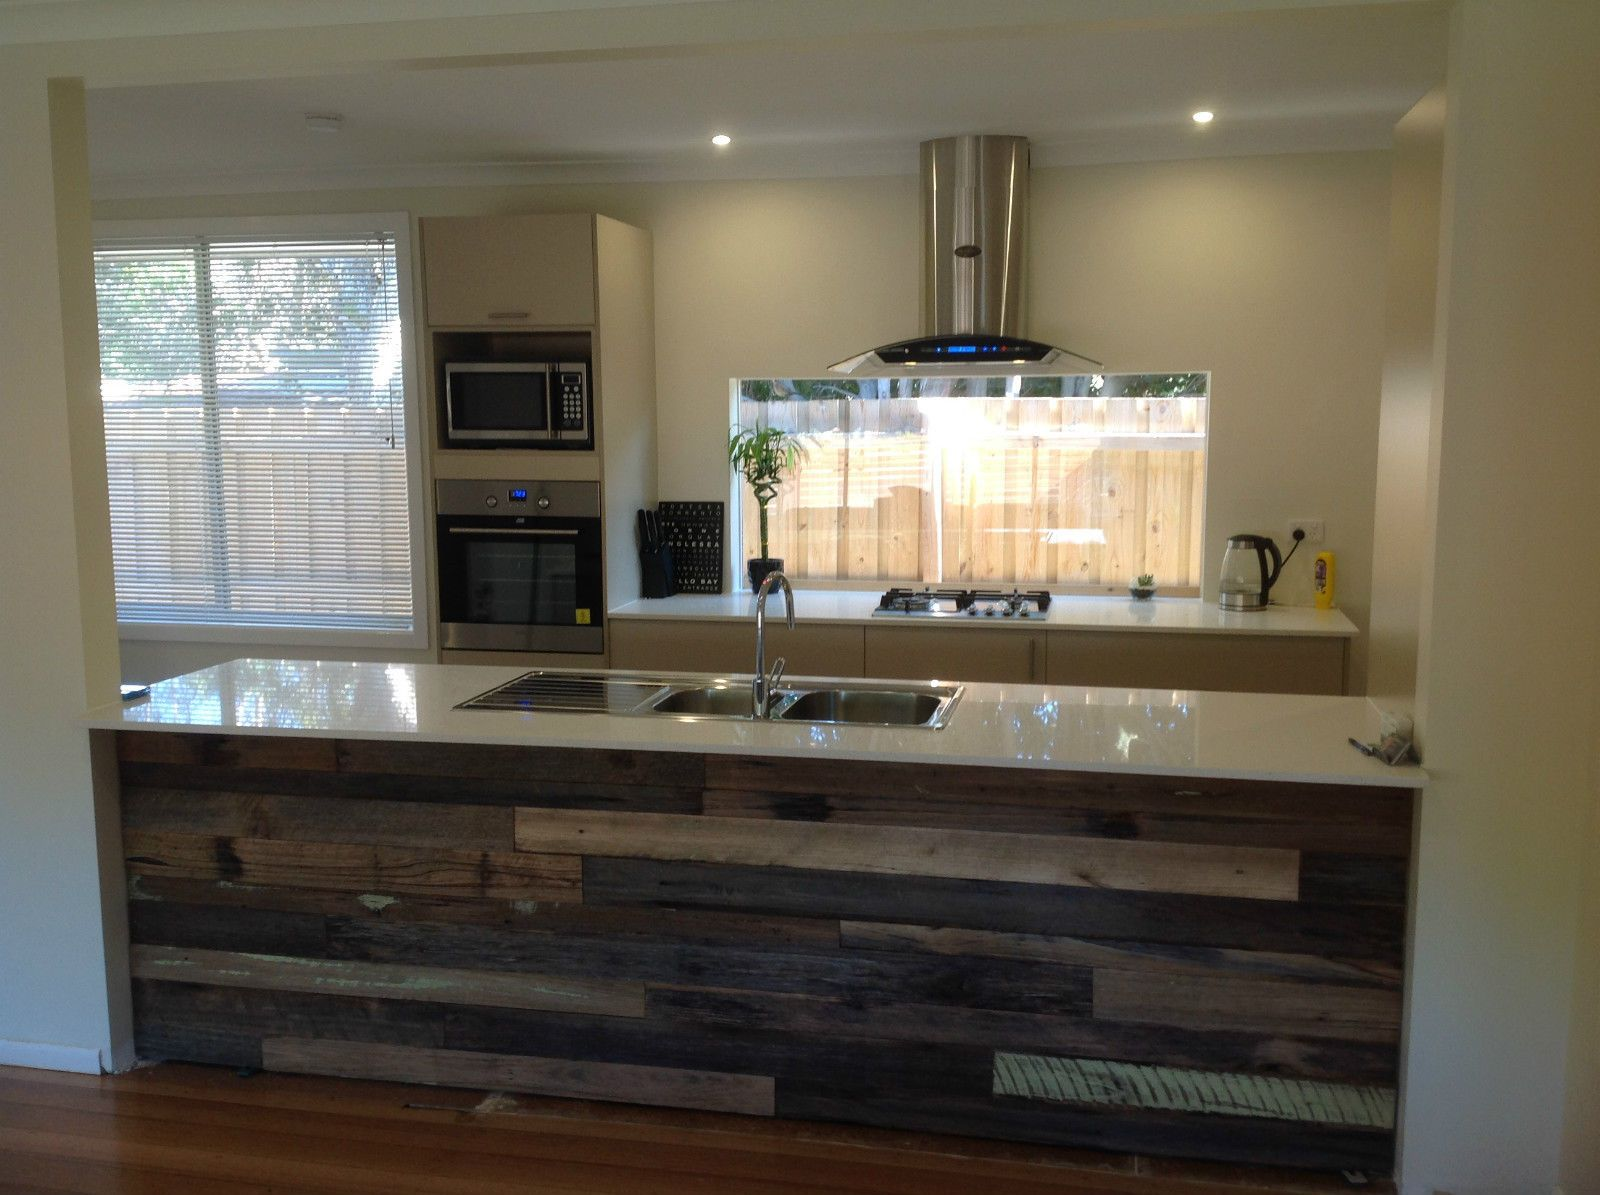 Kitchen Islands Ebay Recycled hardwood kitchen island bench face panels ebay projects timber kitchen islands kitchen carts ebay workwithnaturefo